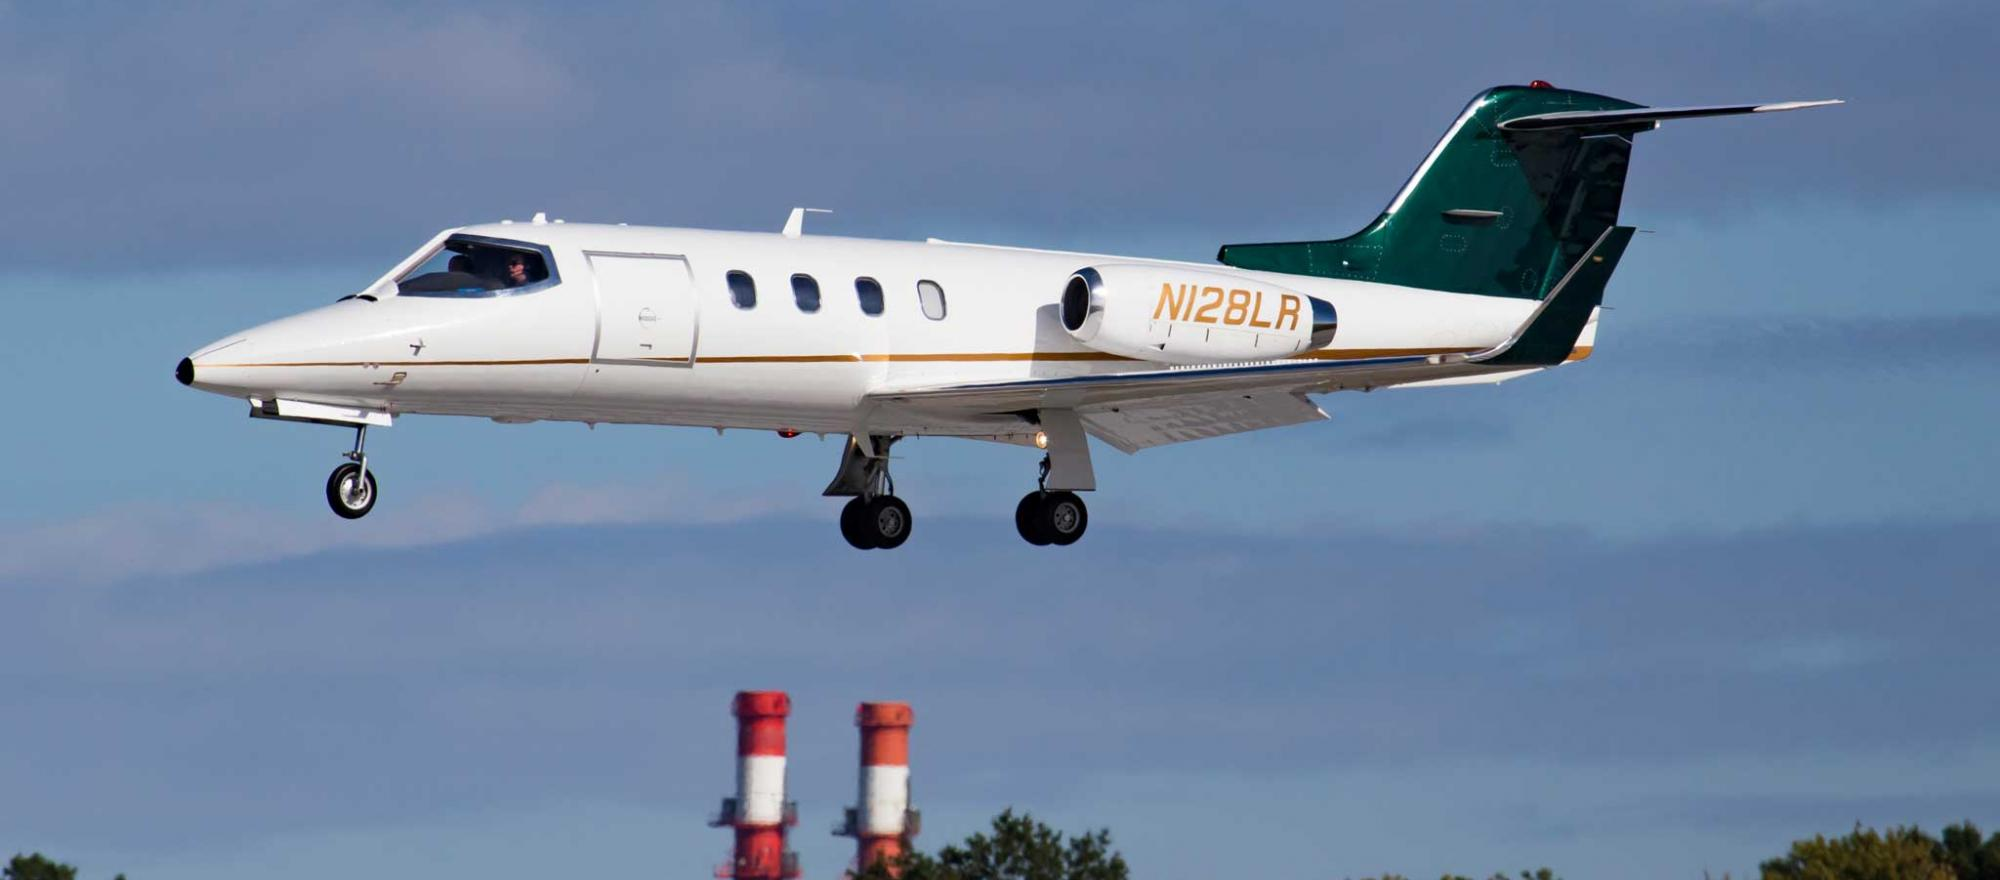 The first Learjet 28